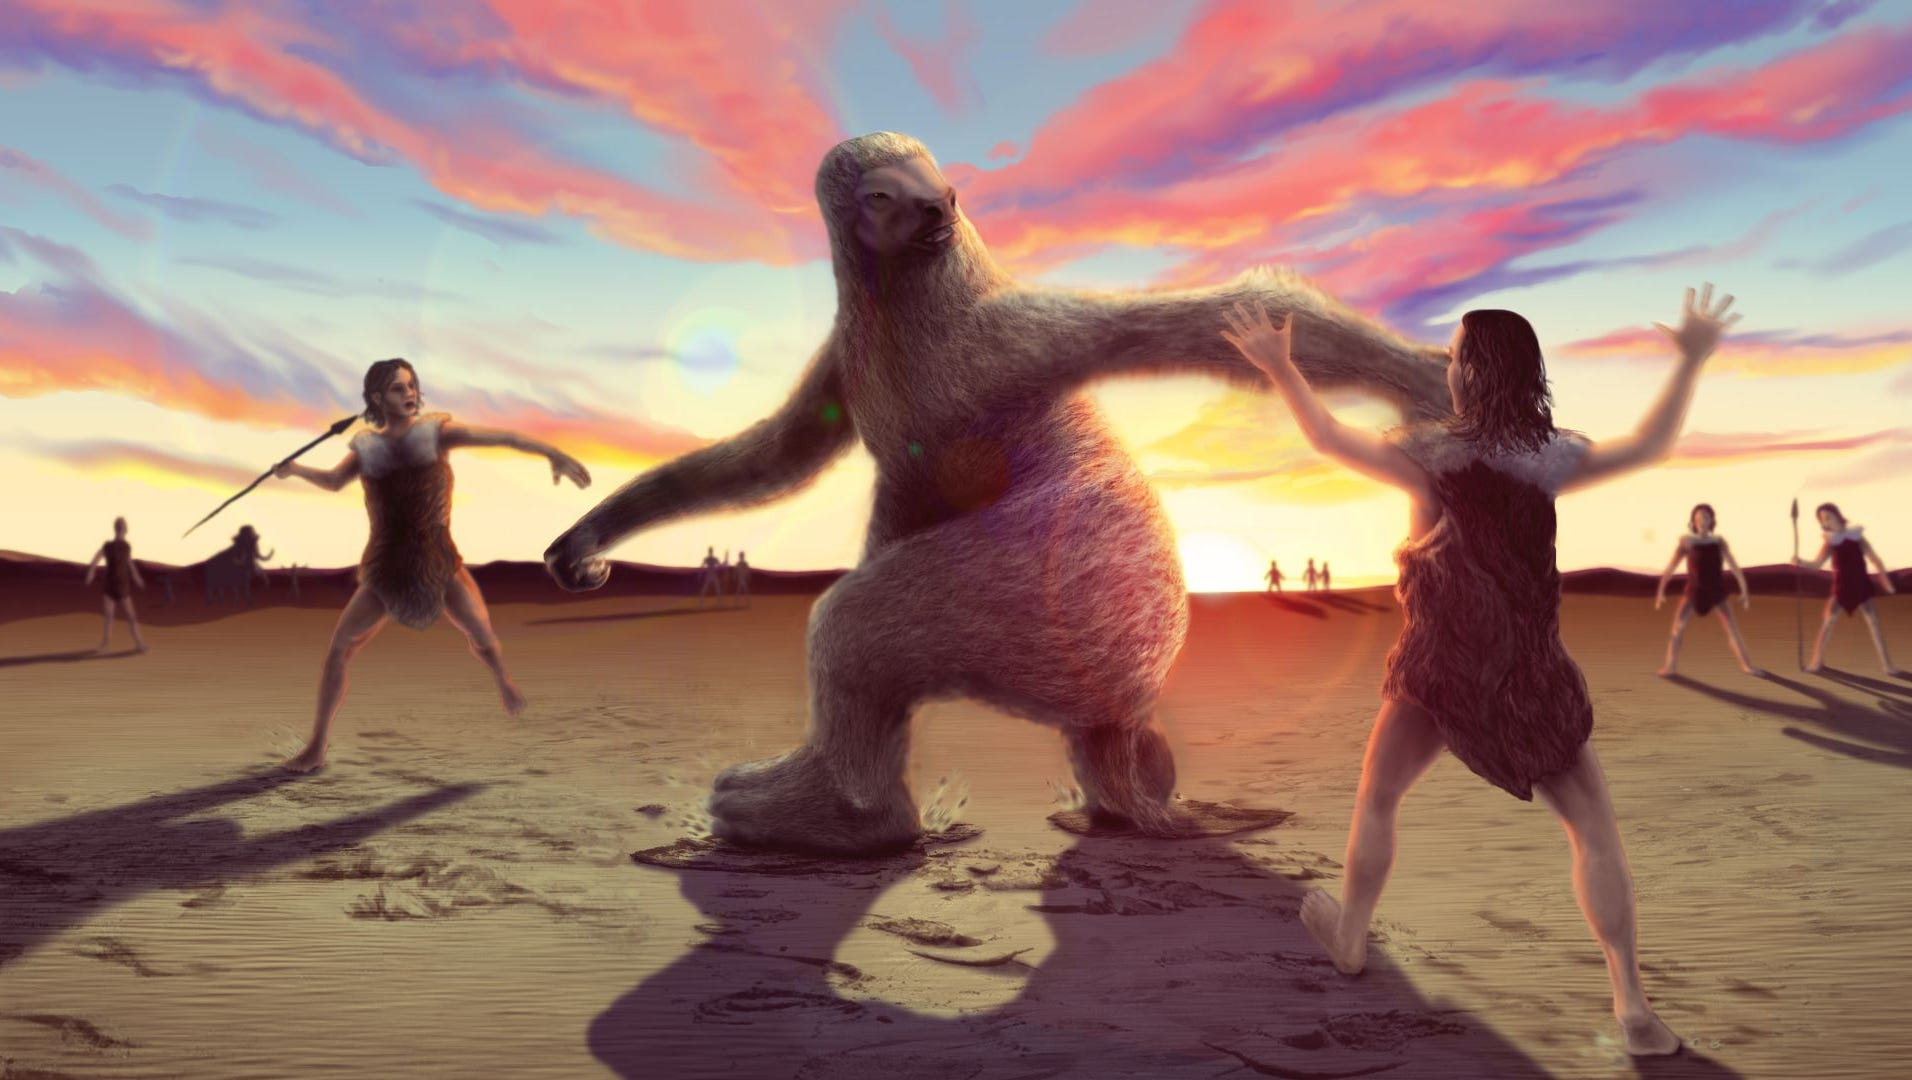 Giant ground sloths hunted by ancient humans more than 11,700 years ago